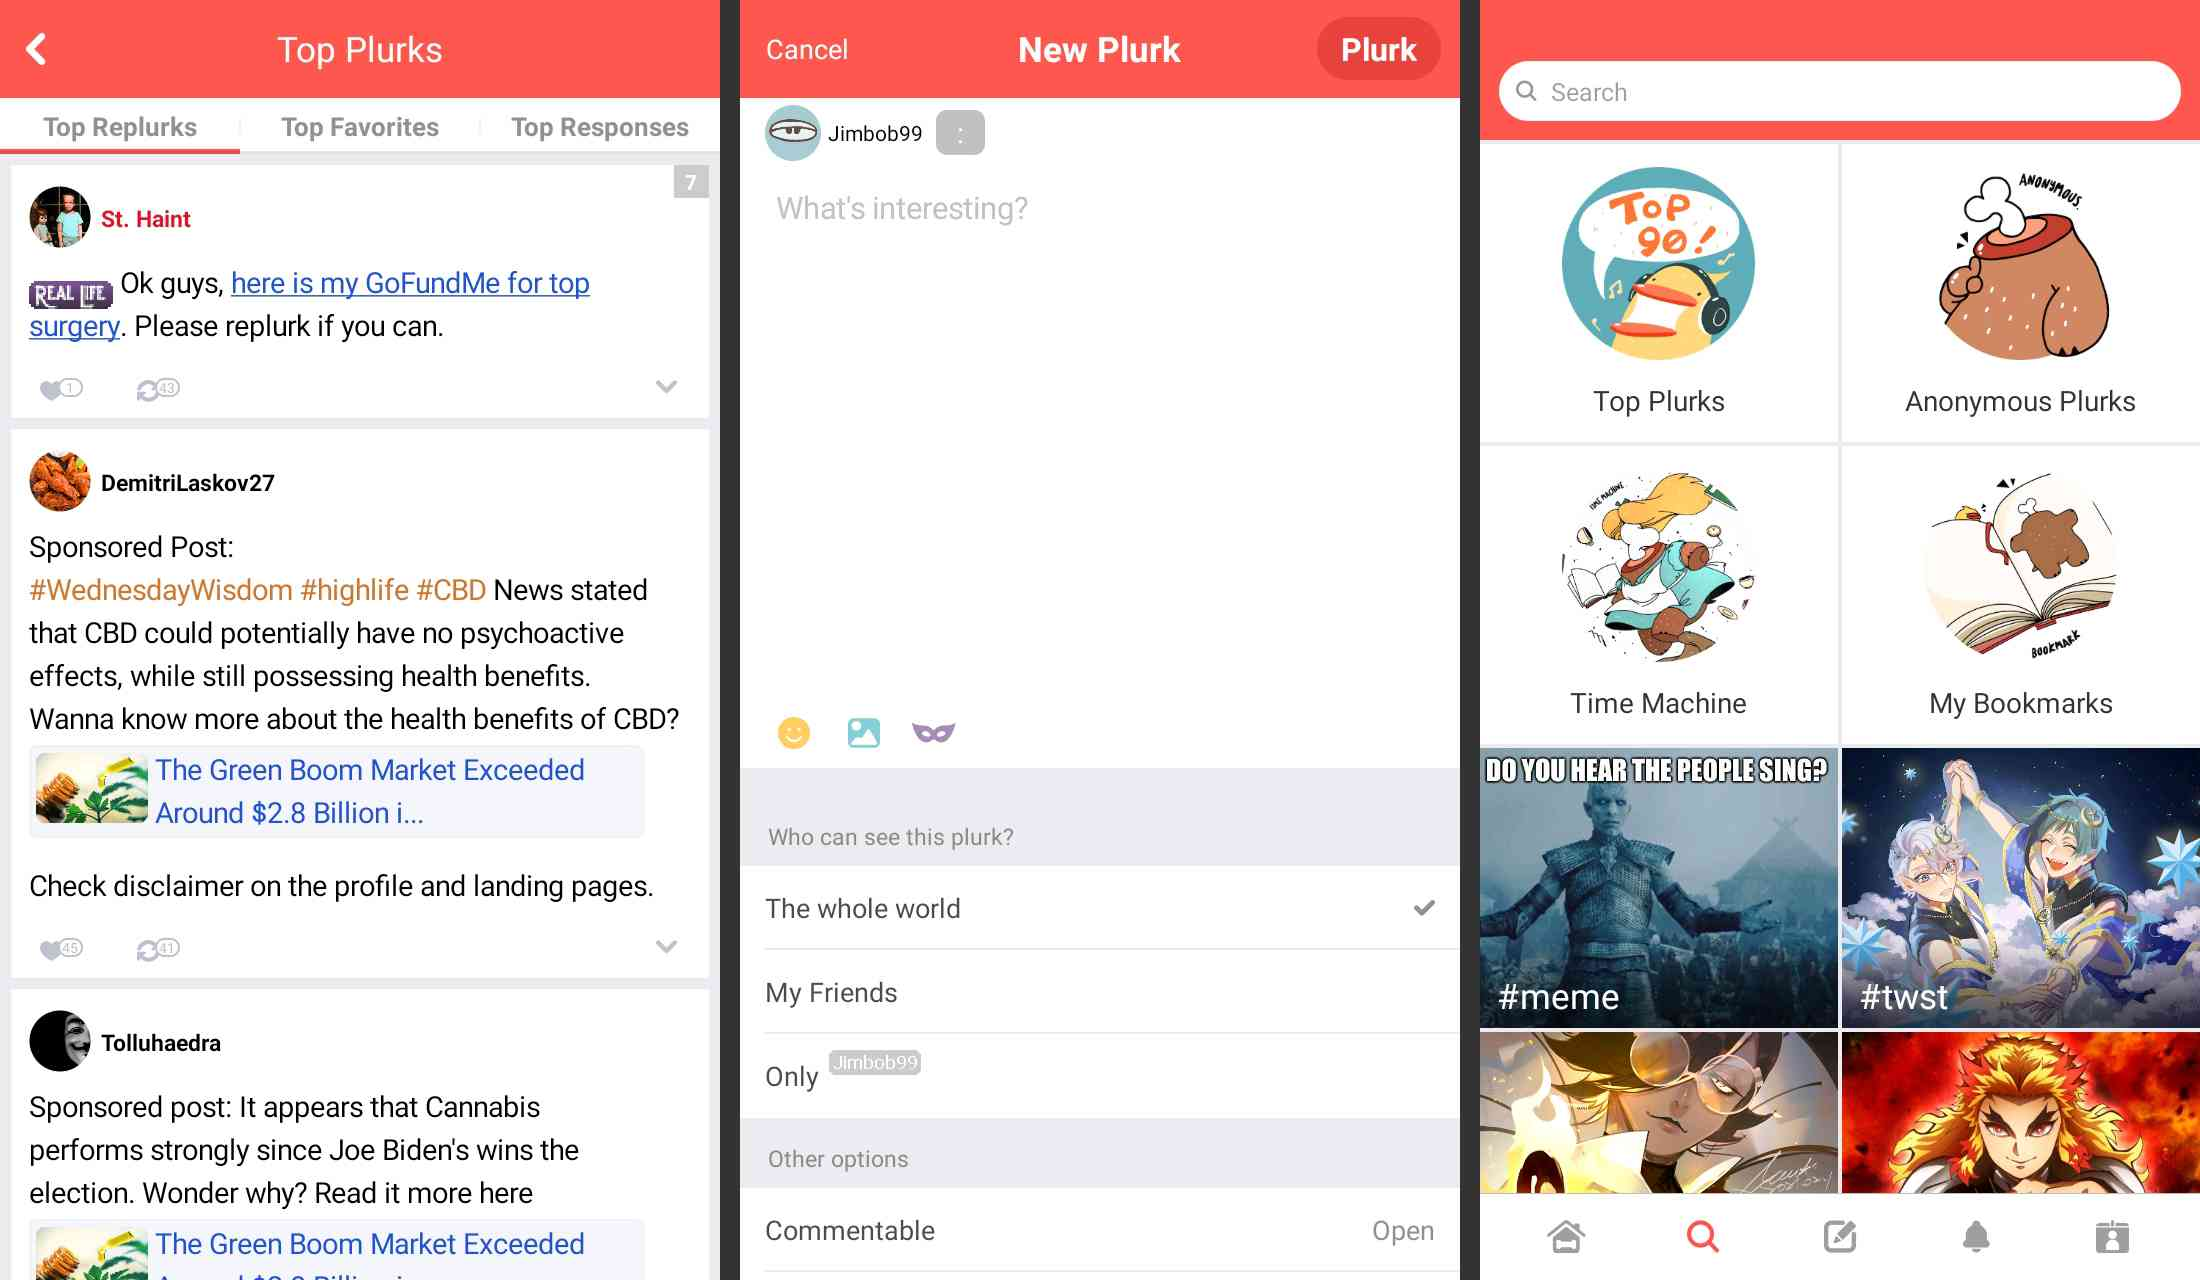 Plurk social network app for Android